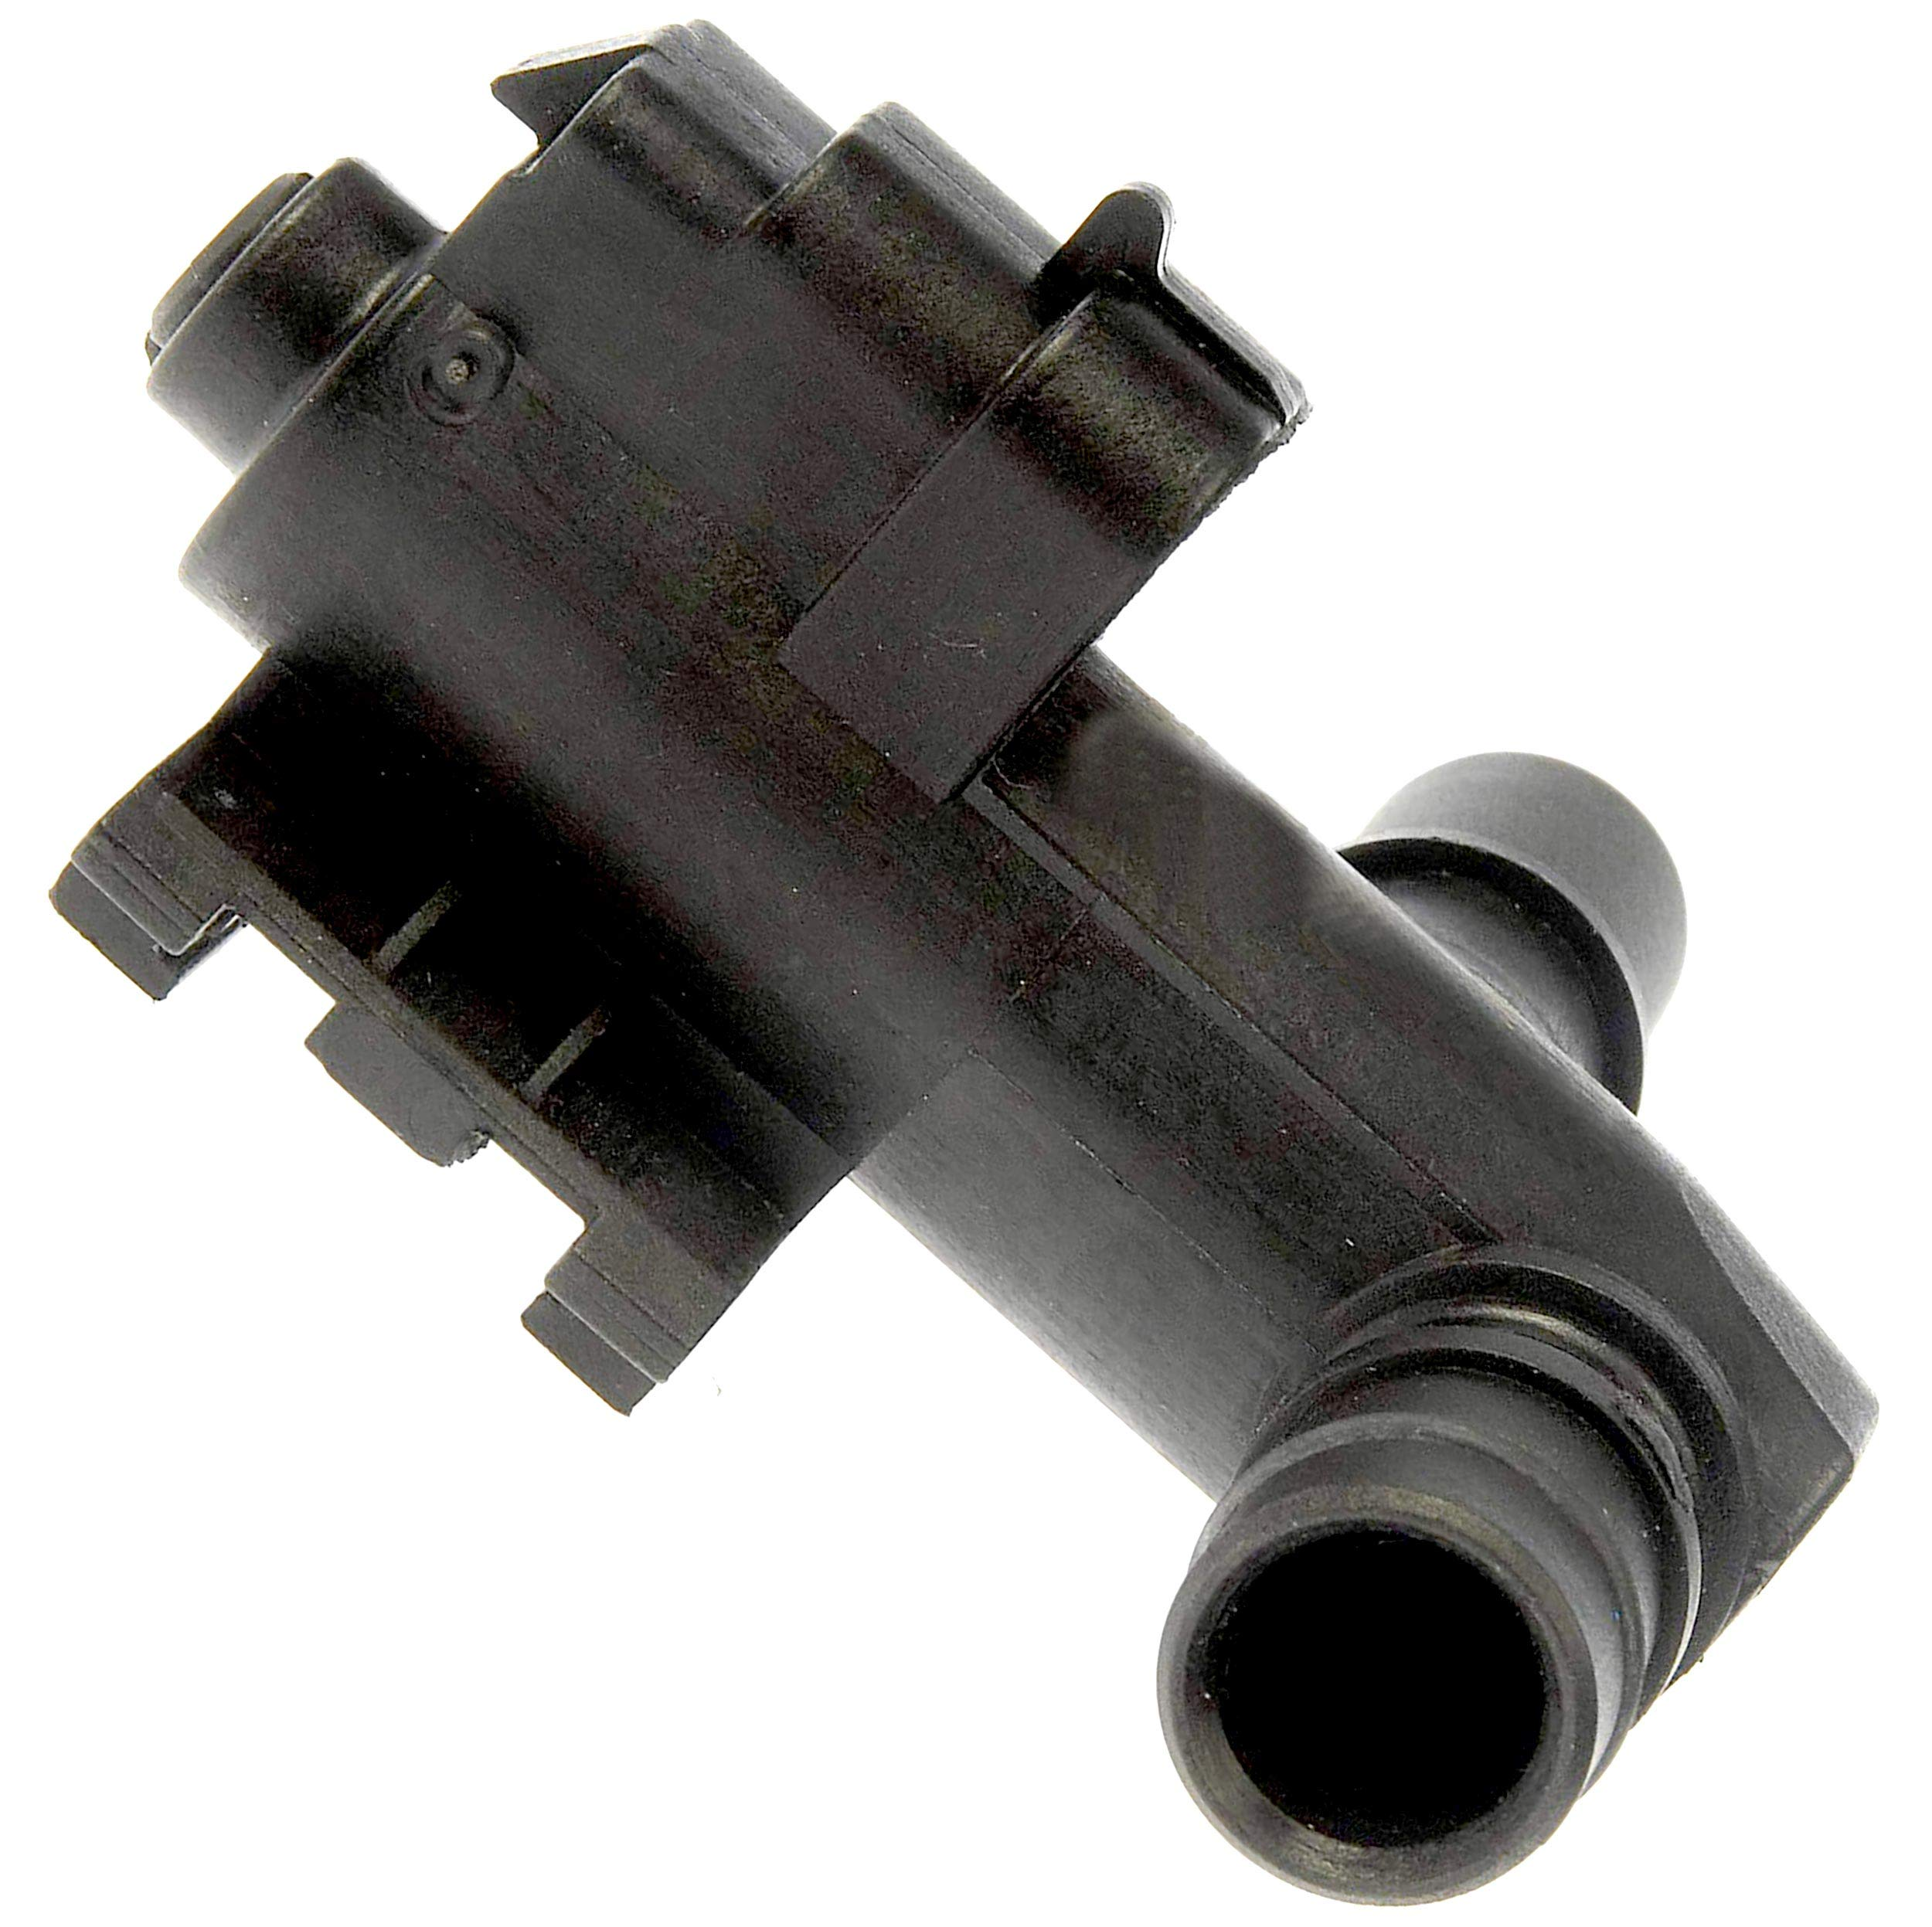 APDTY 022132 Vapor Canister Purge Vent Valve Solenoid Fits Cadillac, Chevy, GMC, Hummer Vehicles; View Compatibility Chart For Your Specific Model (Replaces 25932571) by APDTY (Image #2)